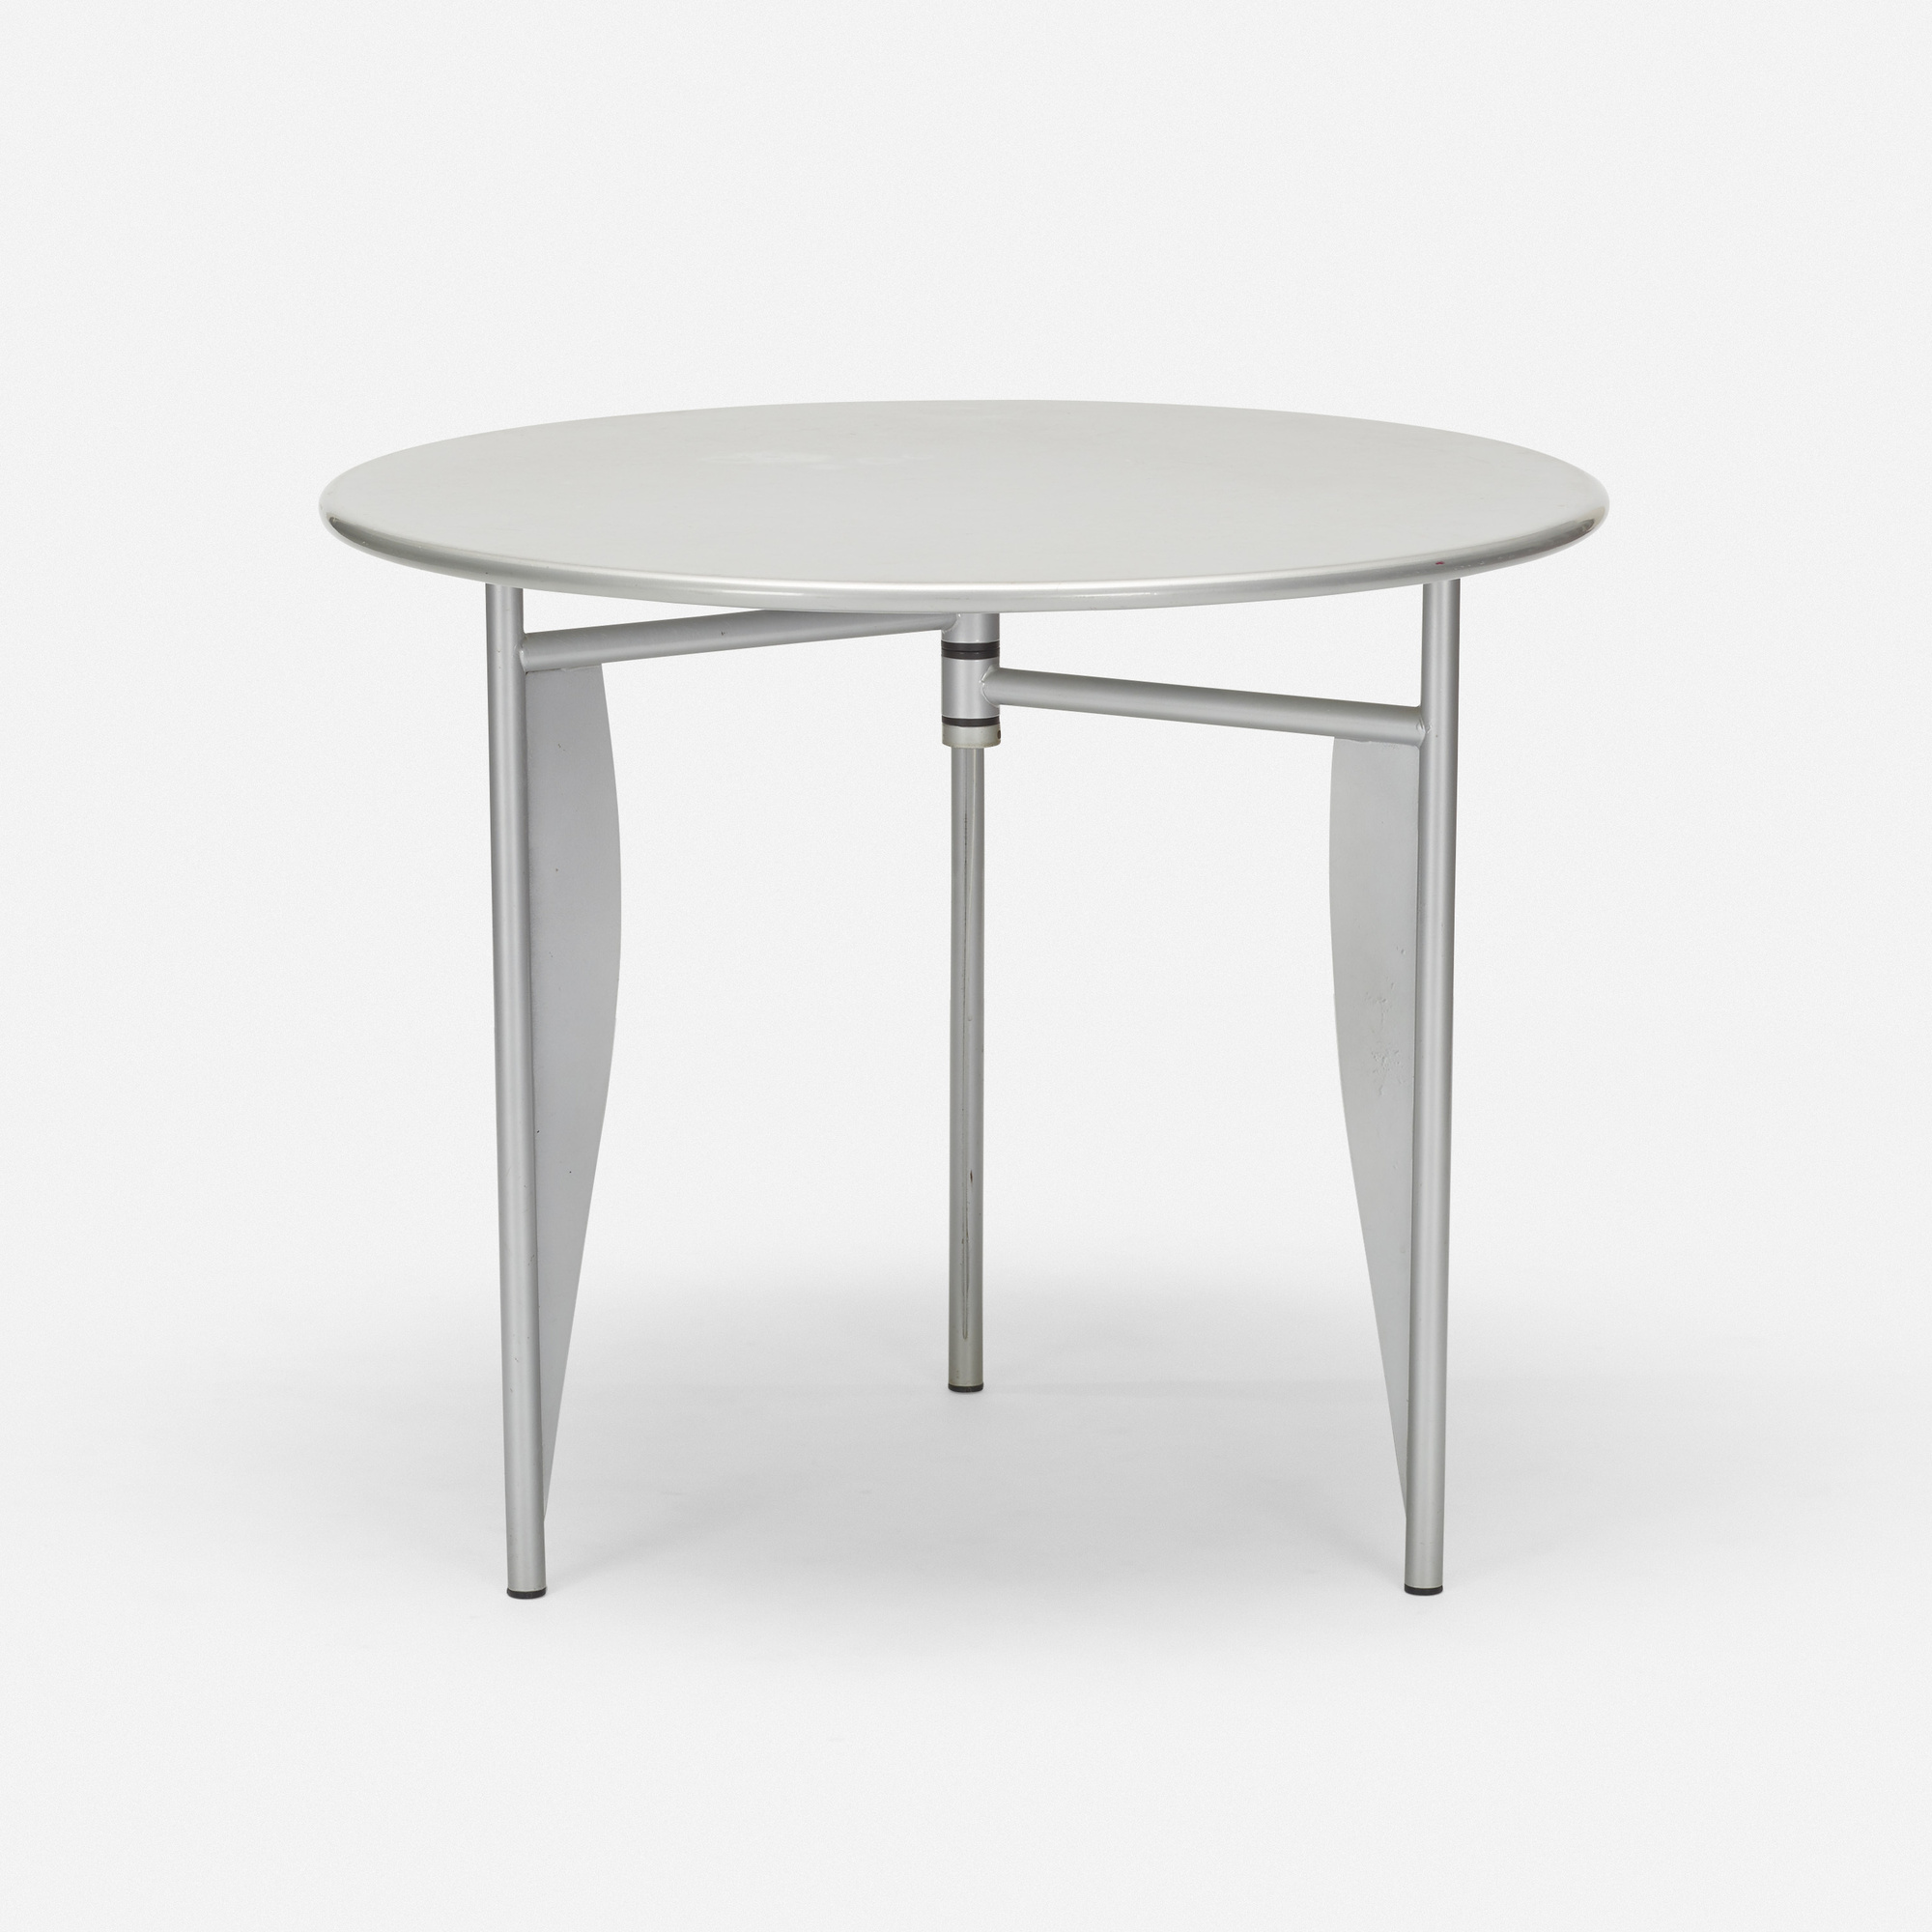 199 philippe starck titos apostos dining table for Philippe starck dining tables